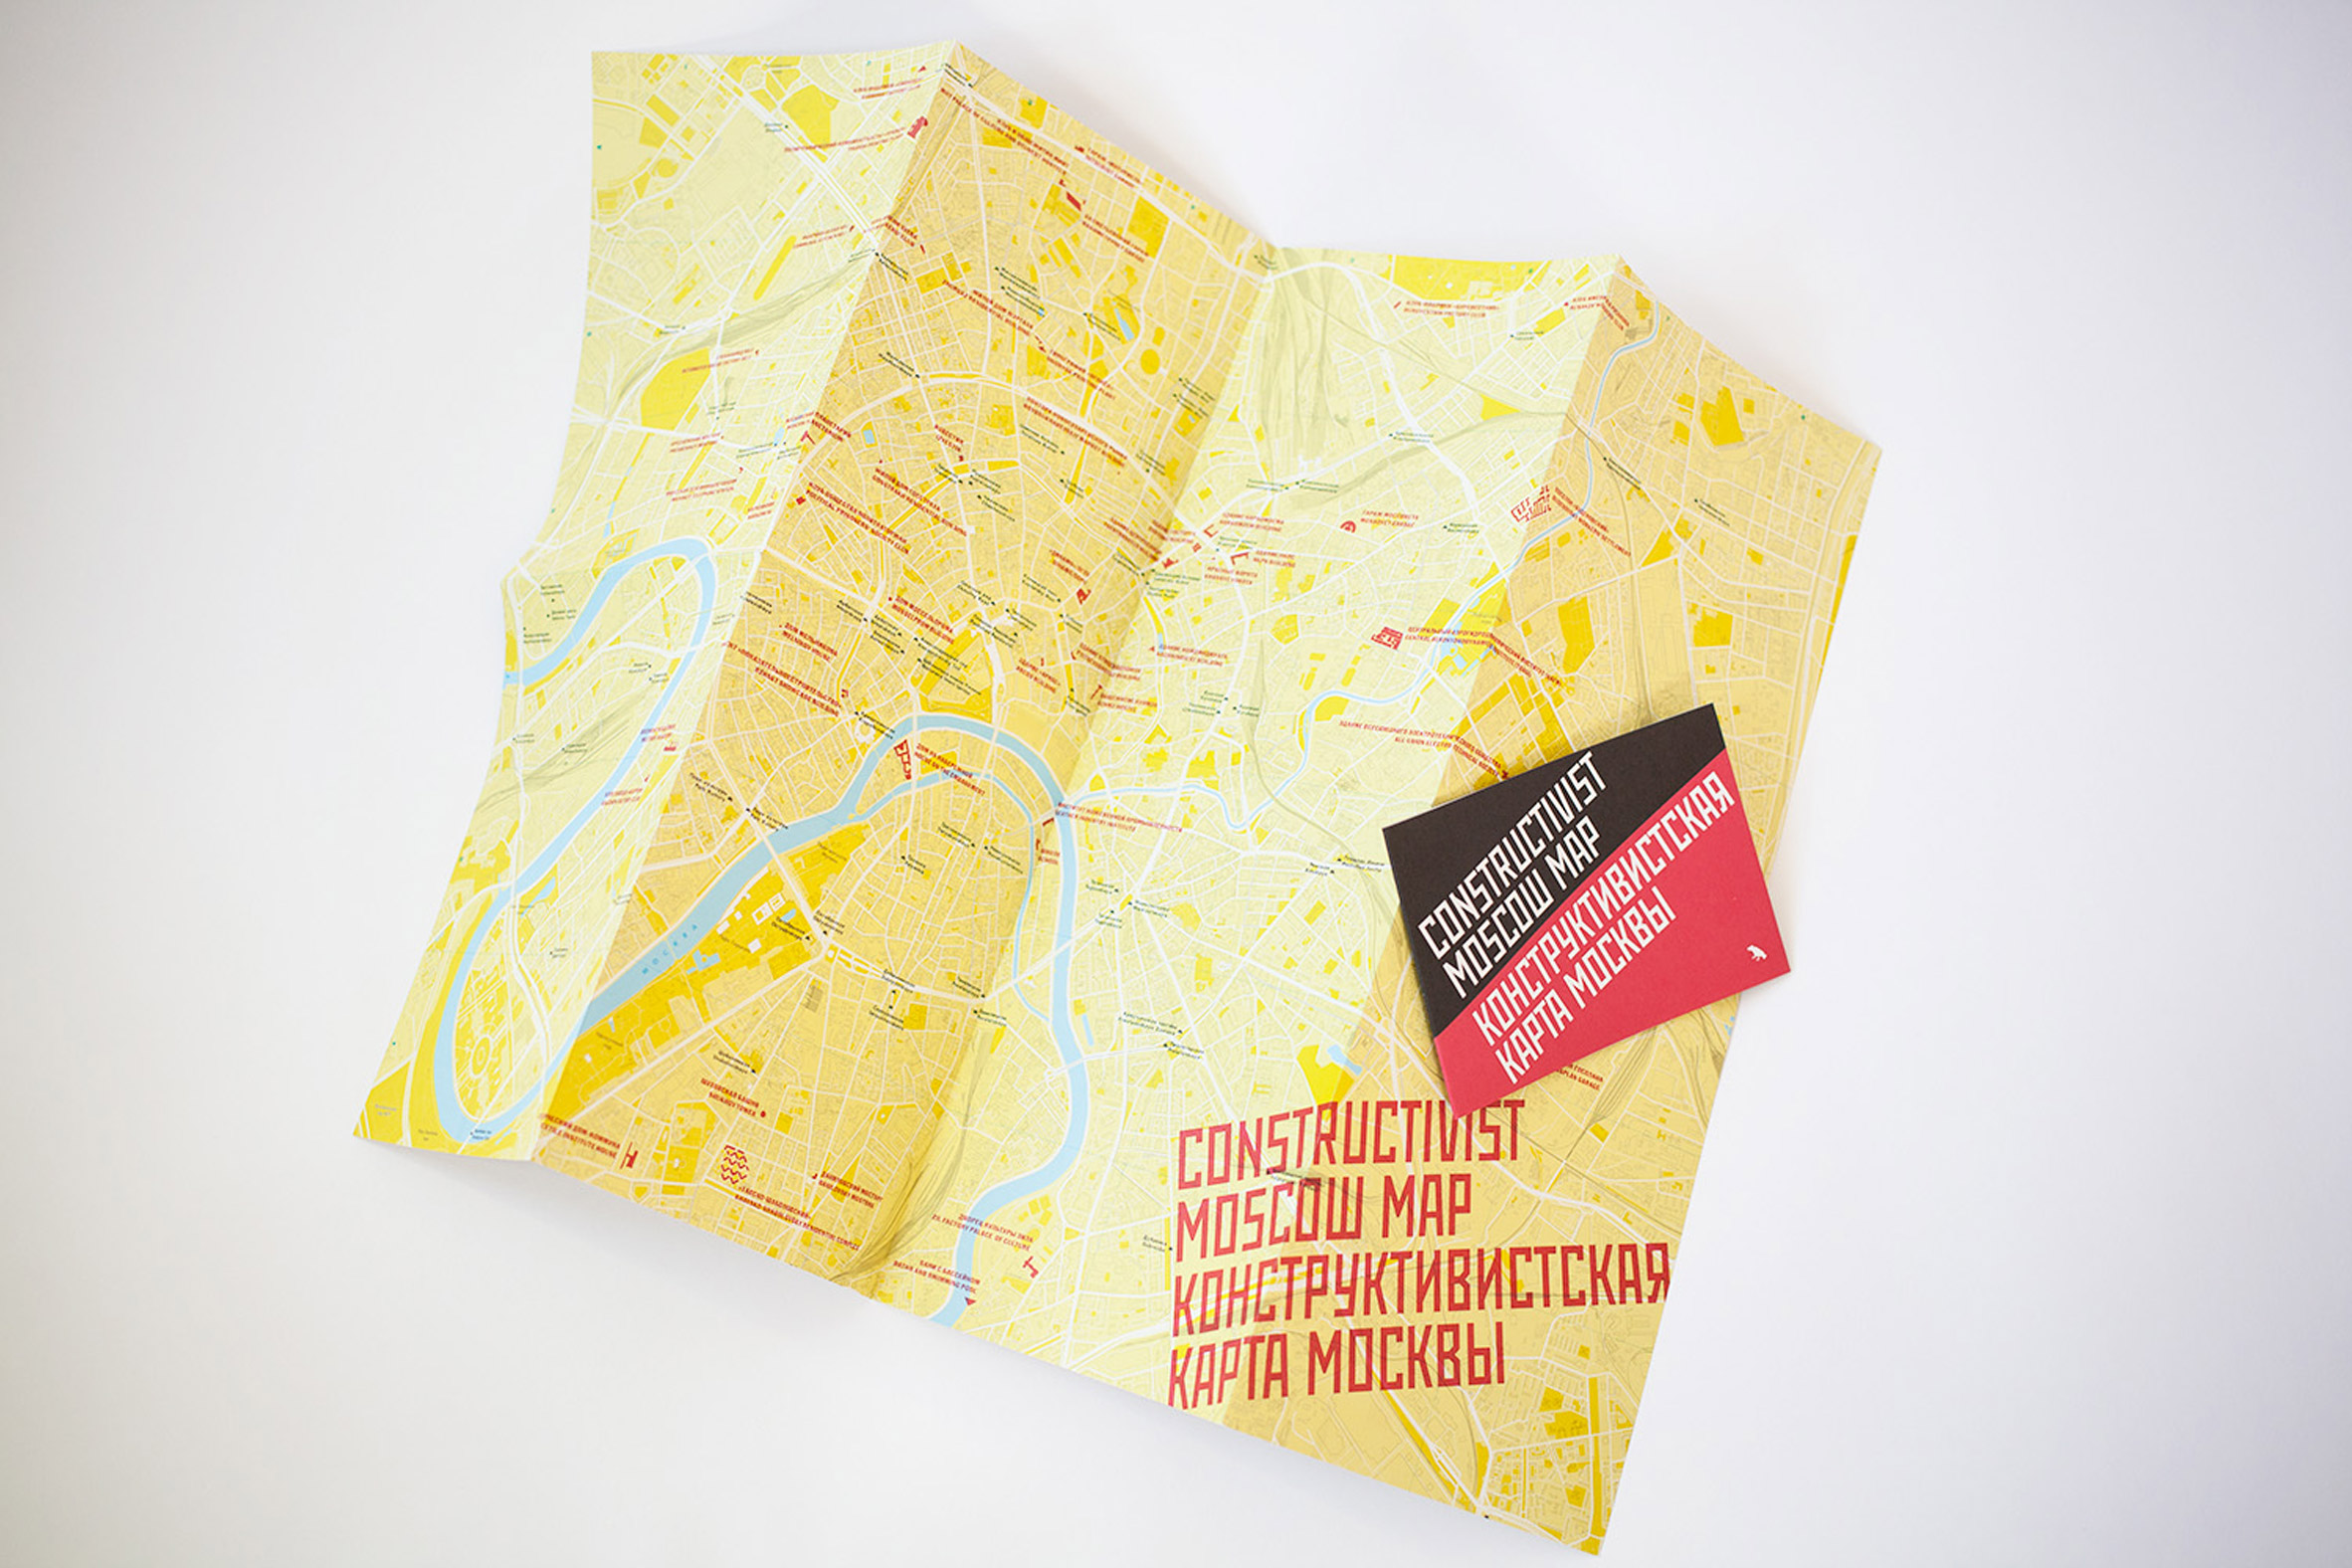 Competition: win a copy of the Constructivist Moscow Map